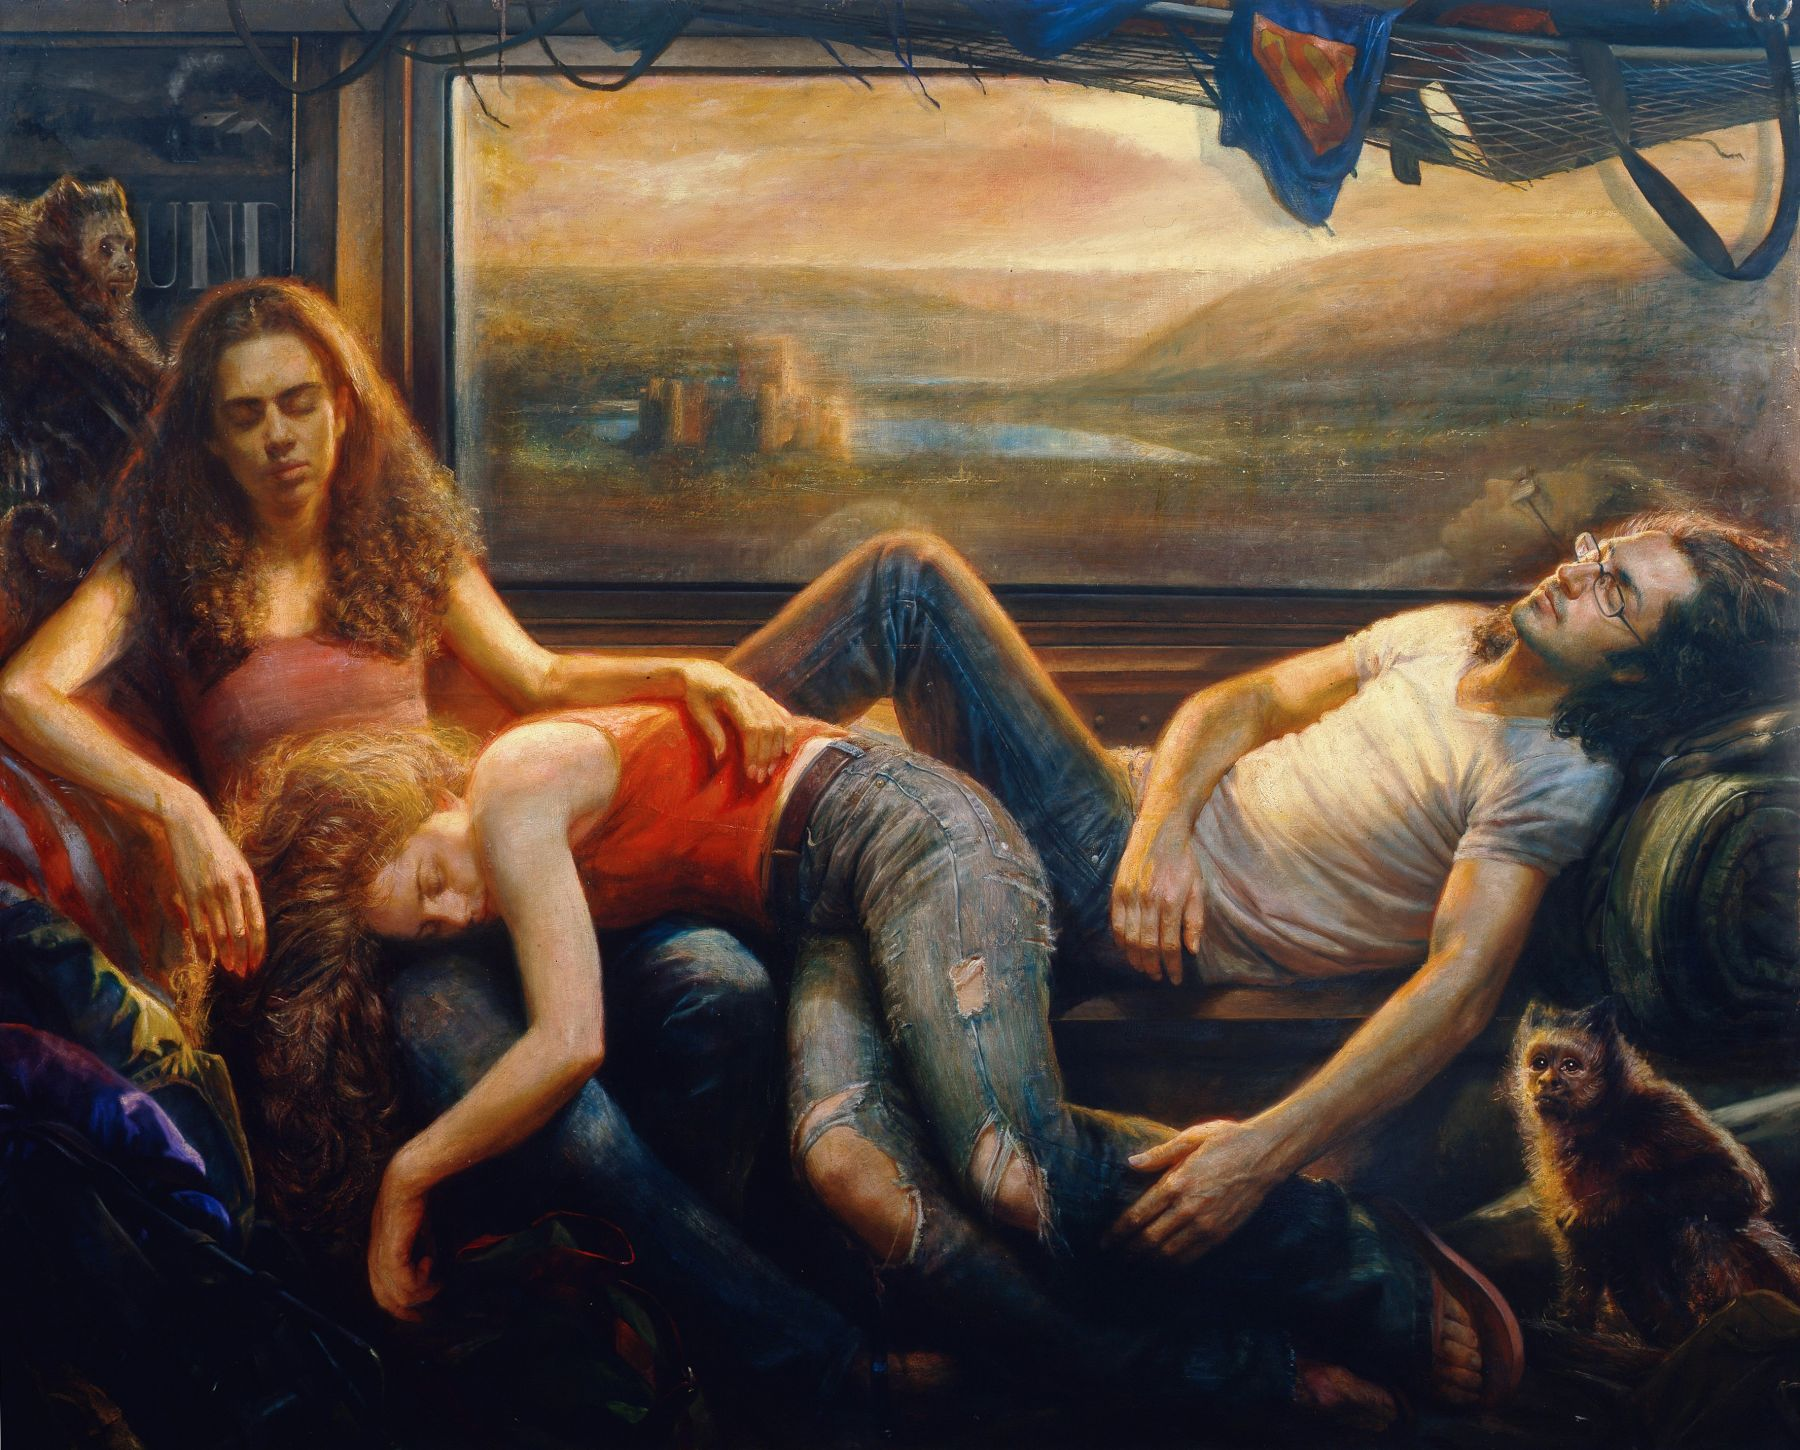 Steven Assael, Passengers (SOLD), 2008, oil on canvas, 72 x 90 inches